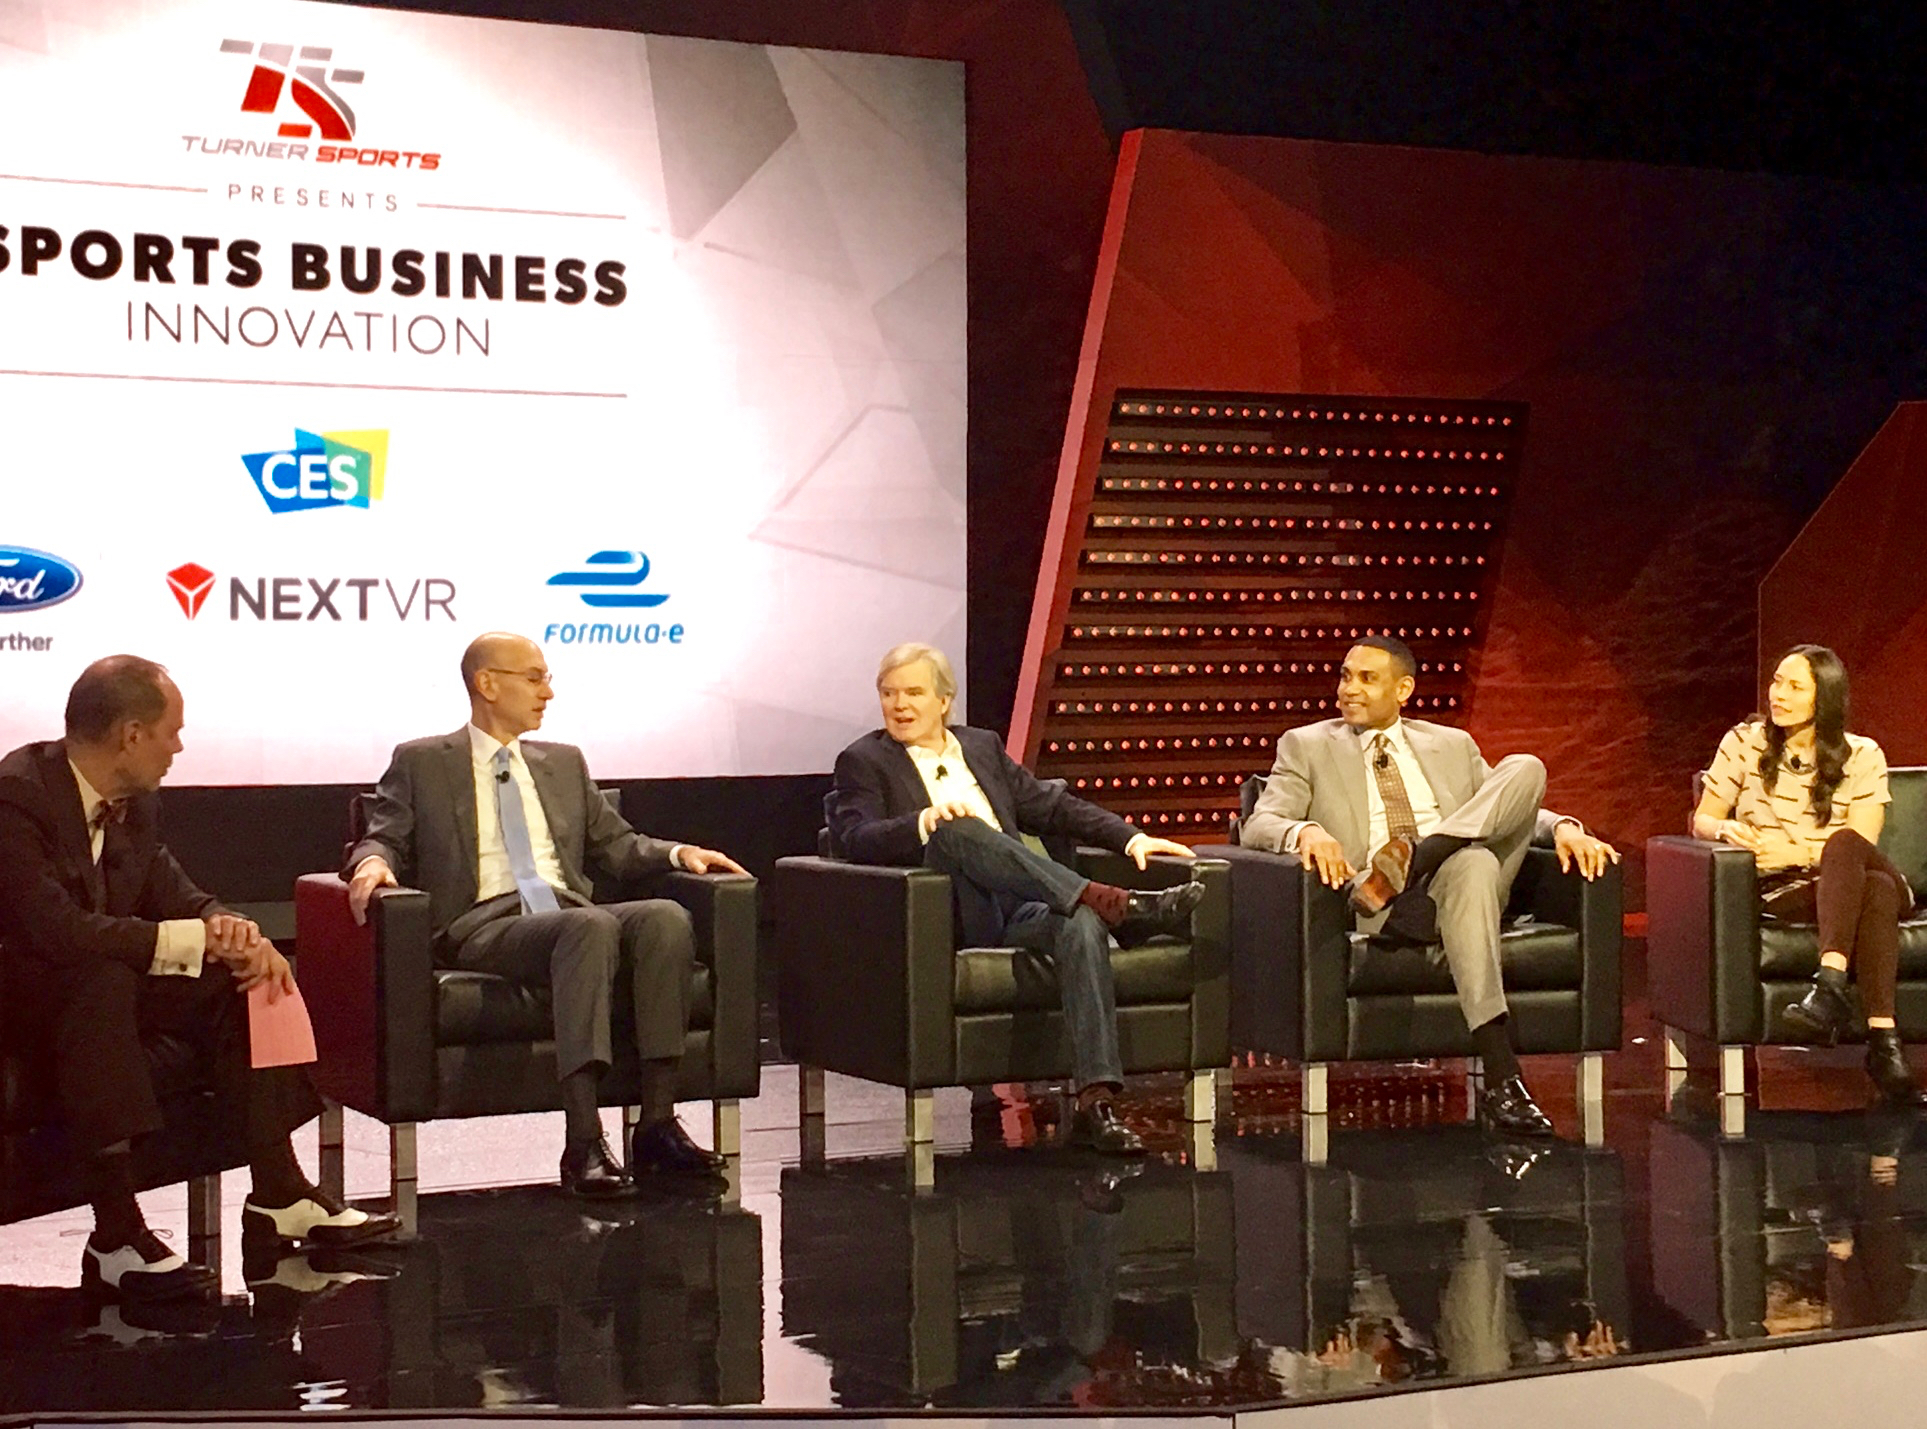 TNT's Ernie Johnson (left) moderated a panel that discussed social media and more at CES. It featured (l-to-r) Adam Silver of the NBA, Dr. Mark Emmert of the NCAA, Grant Hill of TNT/NBA TV, and Sue Bird of the Seattle Storm.